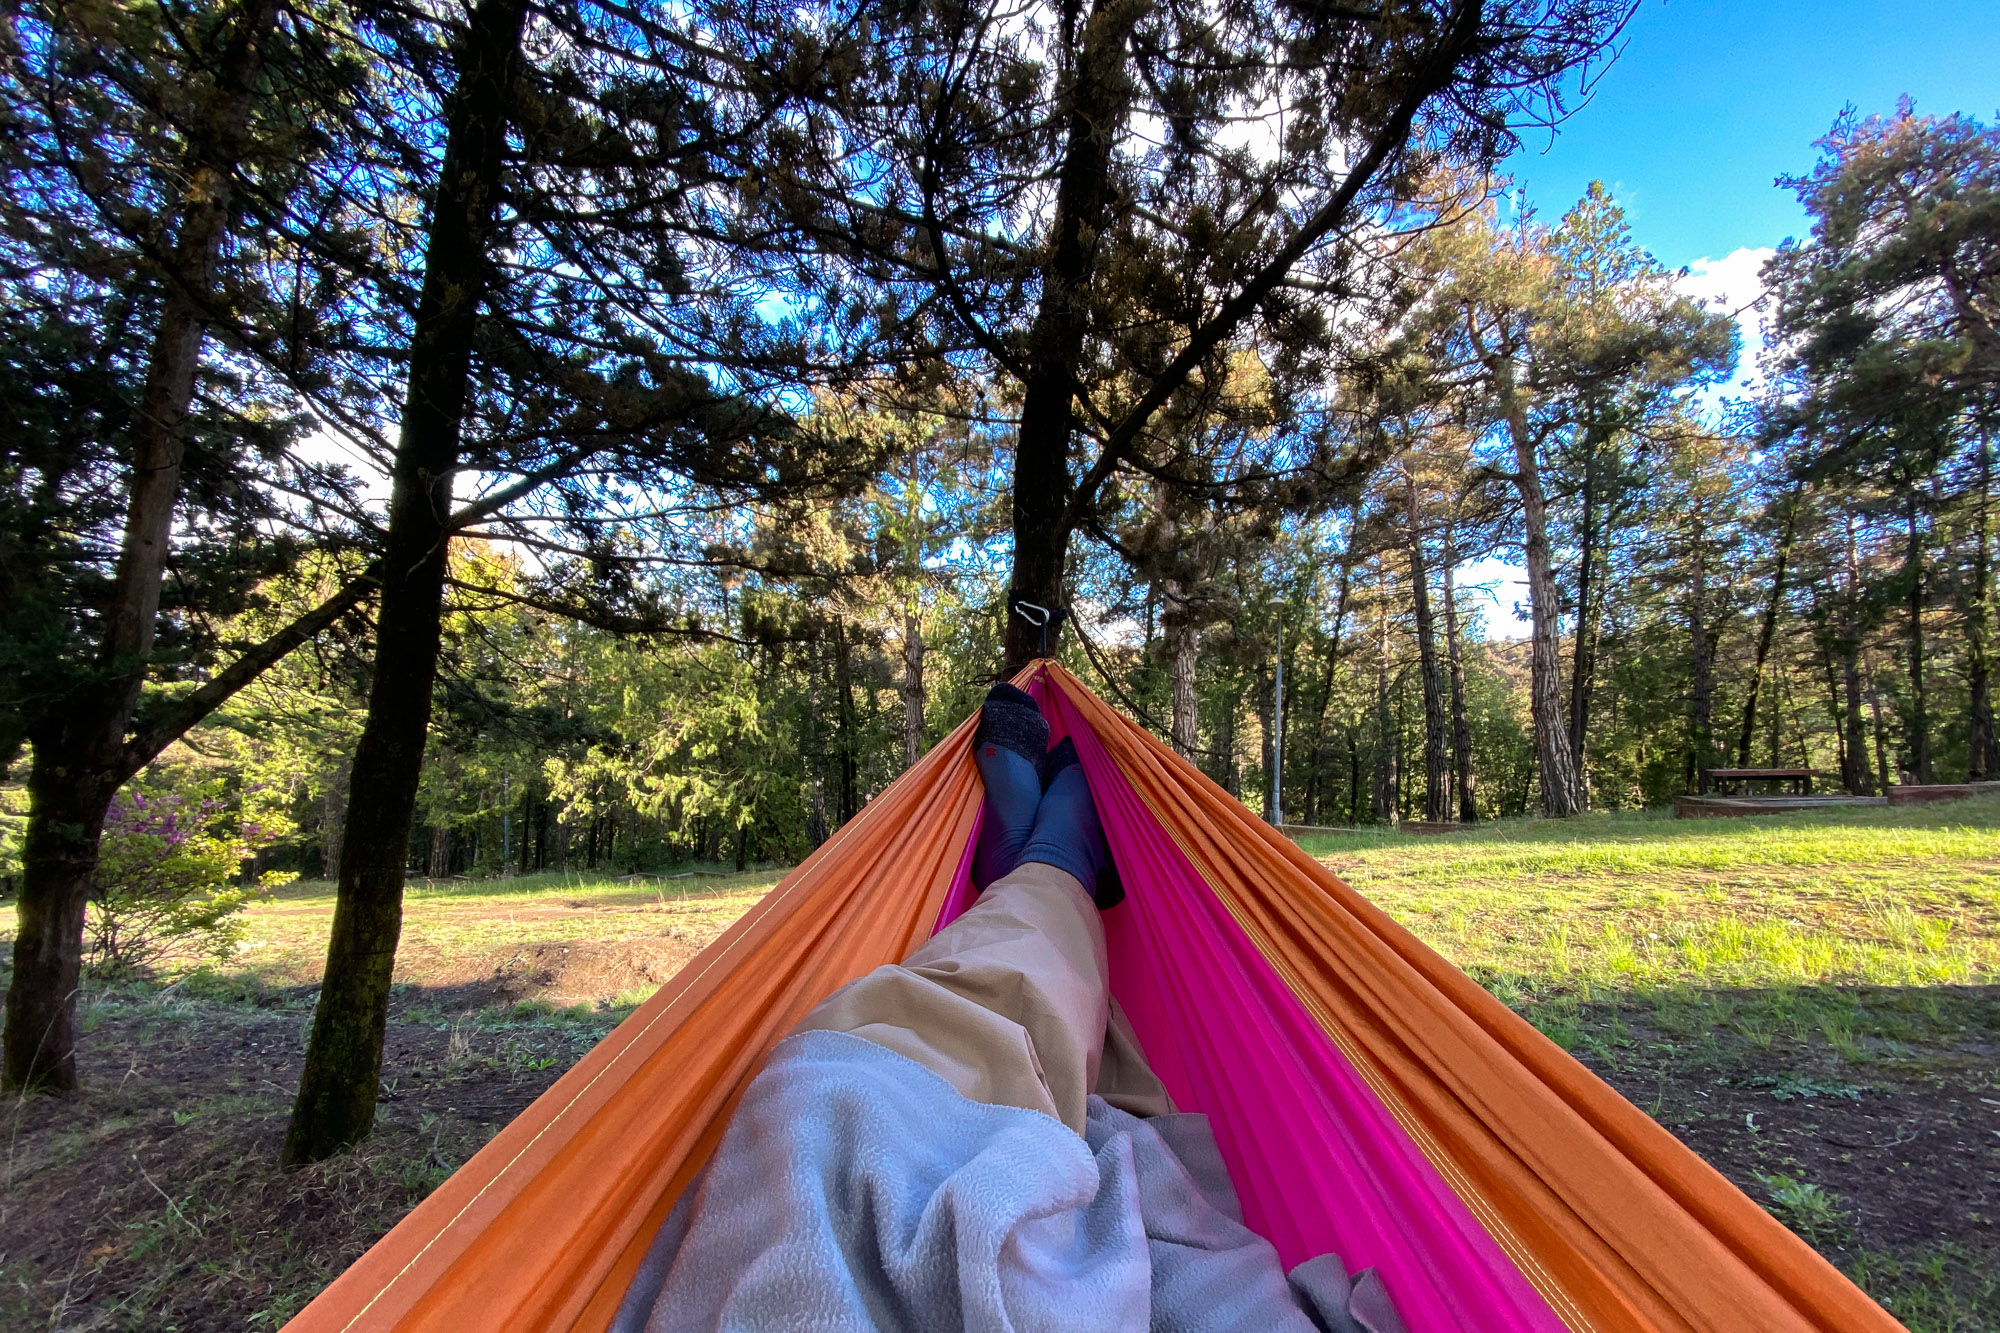 hammock in the park